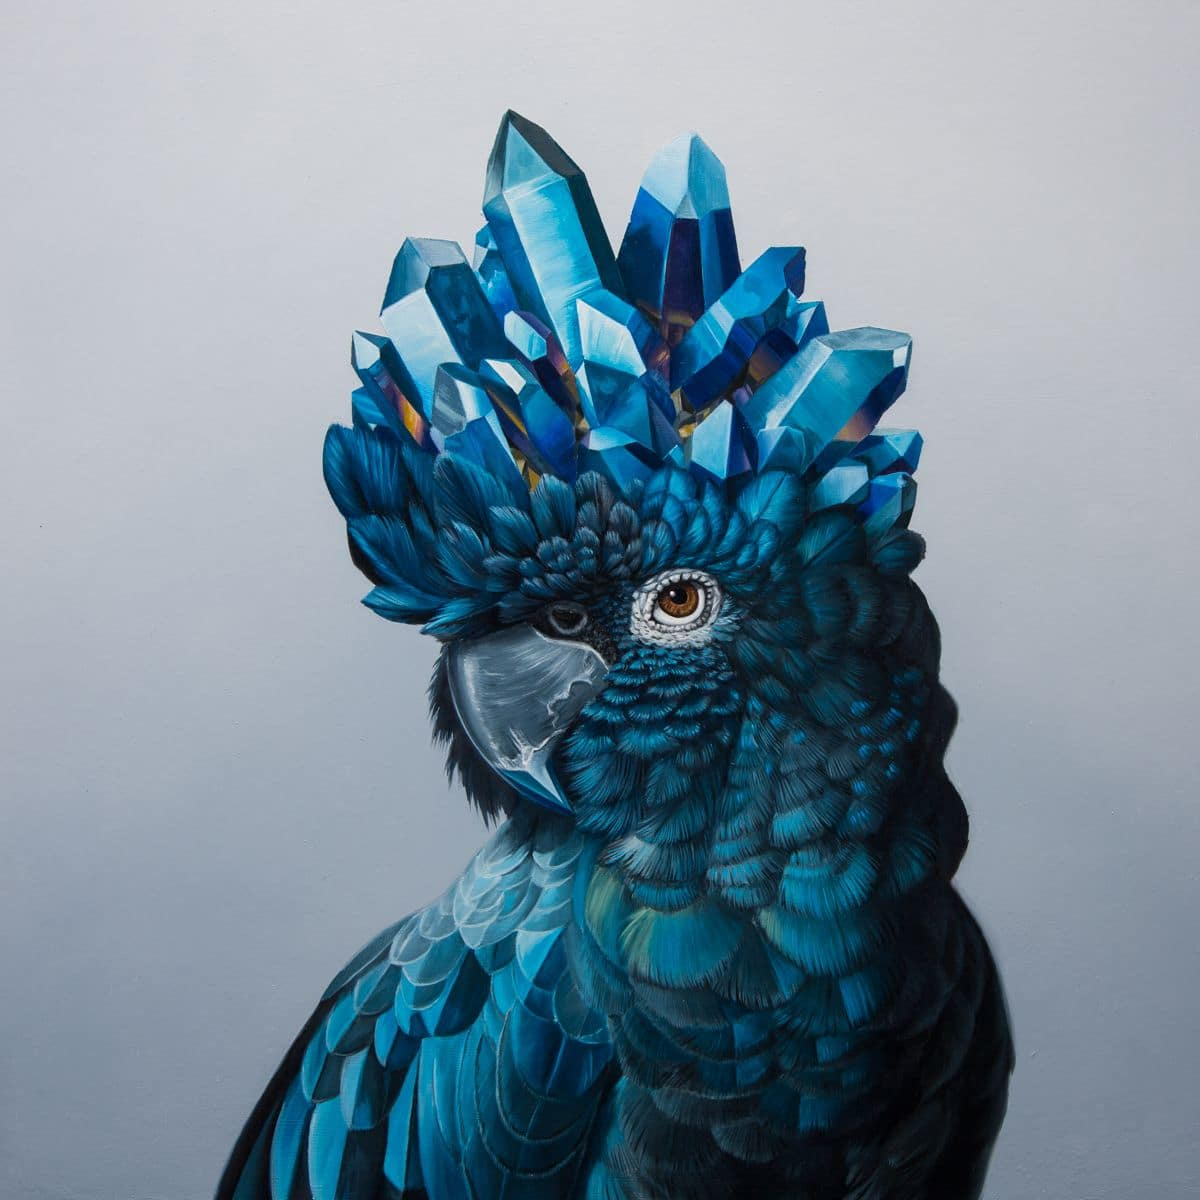 Oil Paintings of Animals by Jon Ching